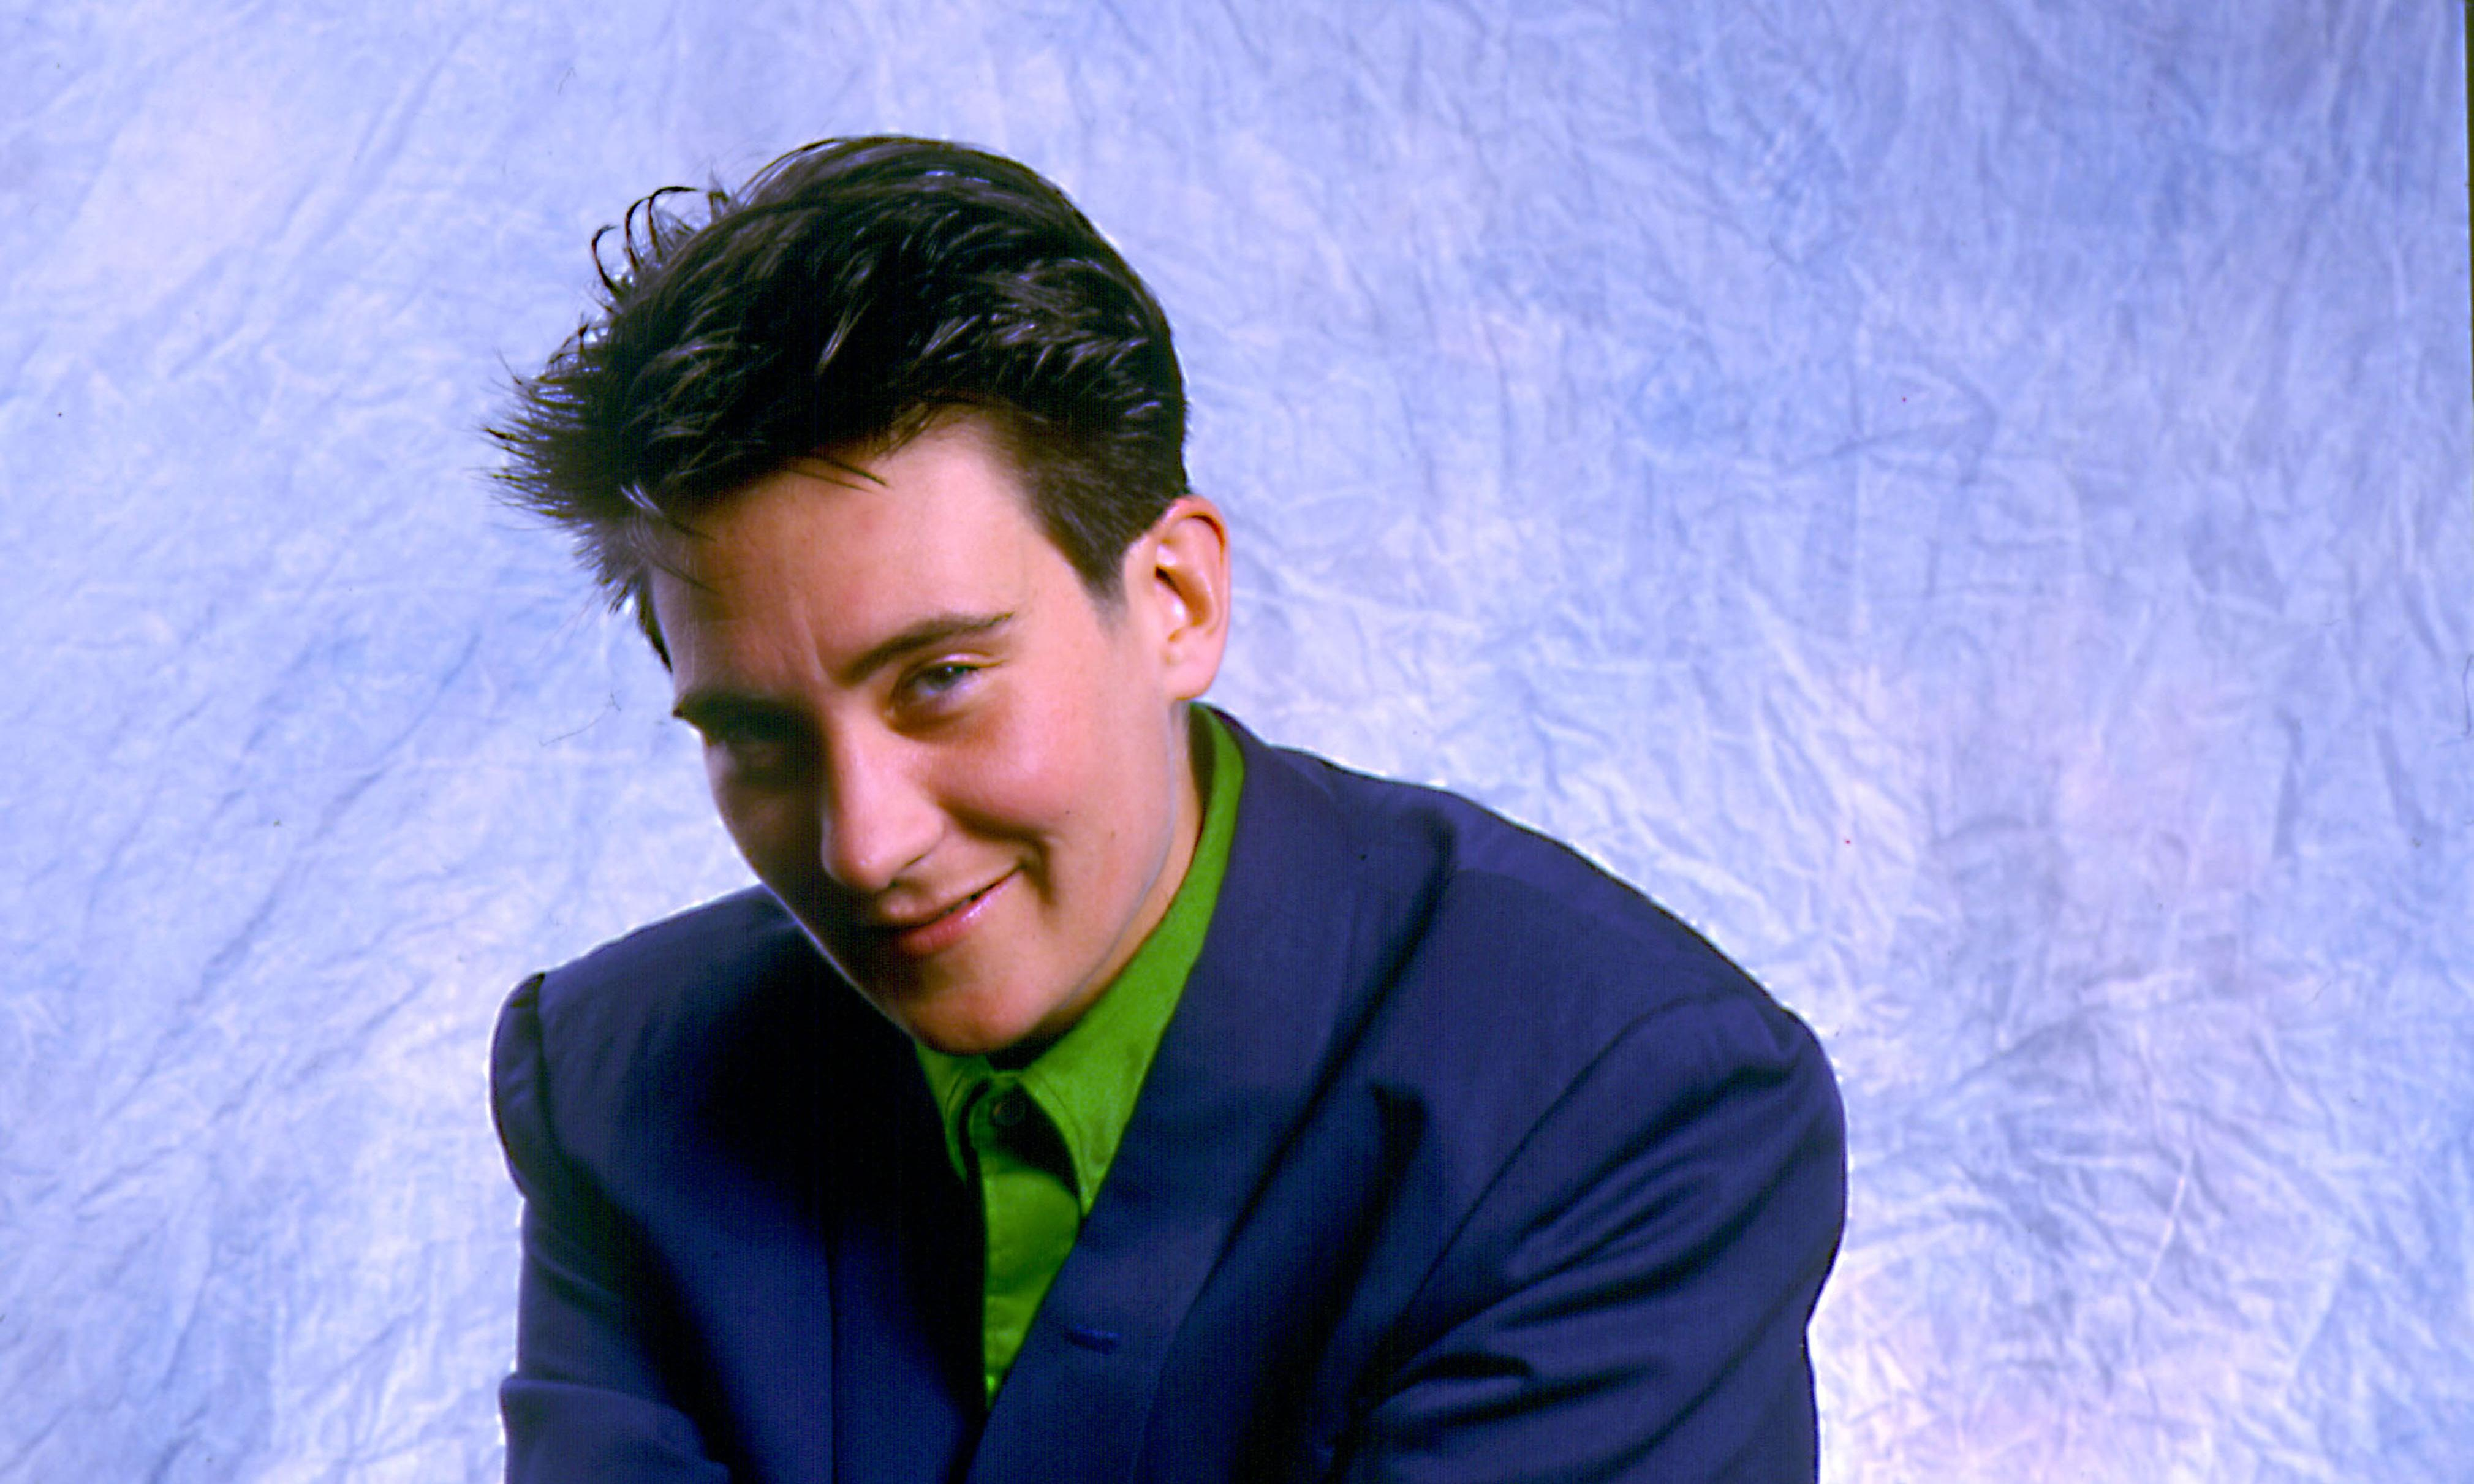 'I feel exhausted by being exposed': kd lang on being a lesbian icon